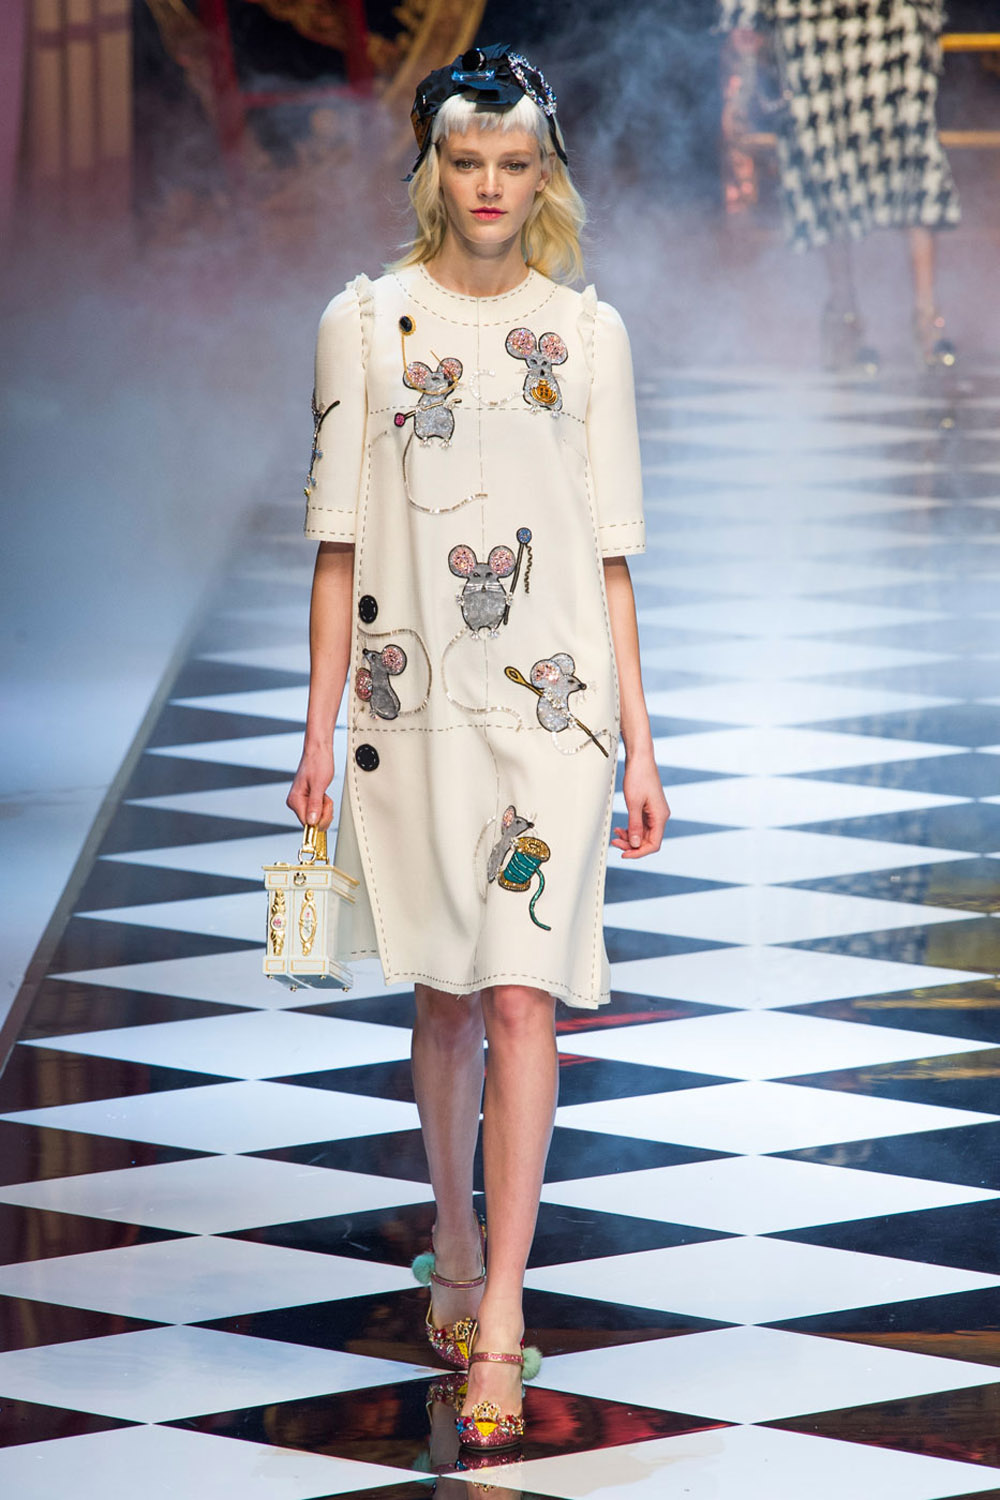 6 Must-See Moments From Dolce and Gabbana's AW16 Fairytale Fashion Show